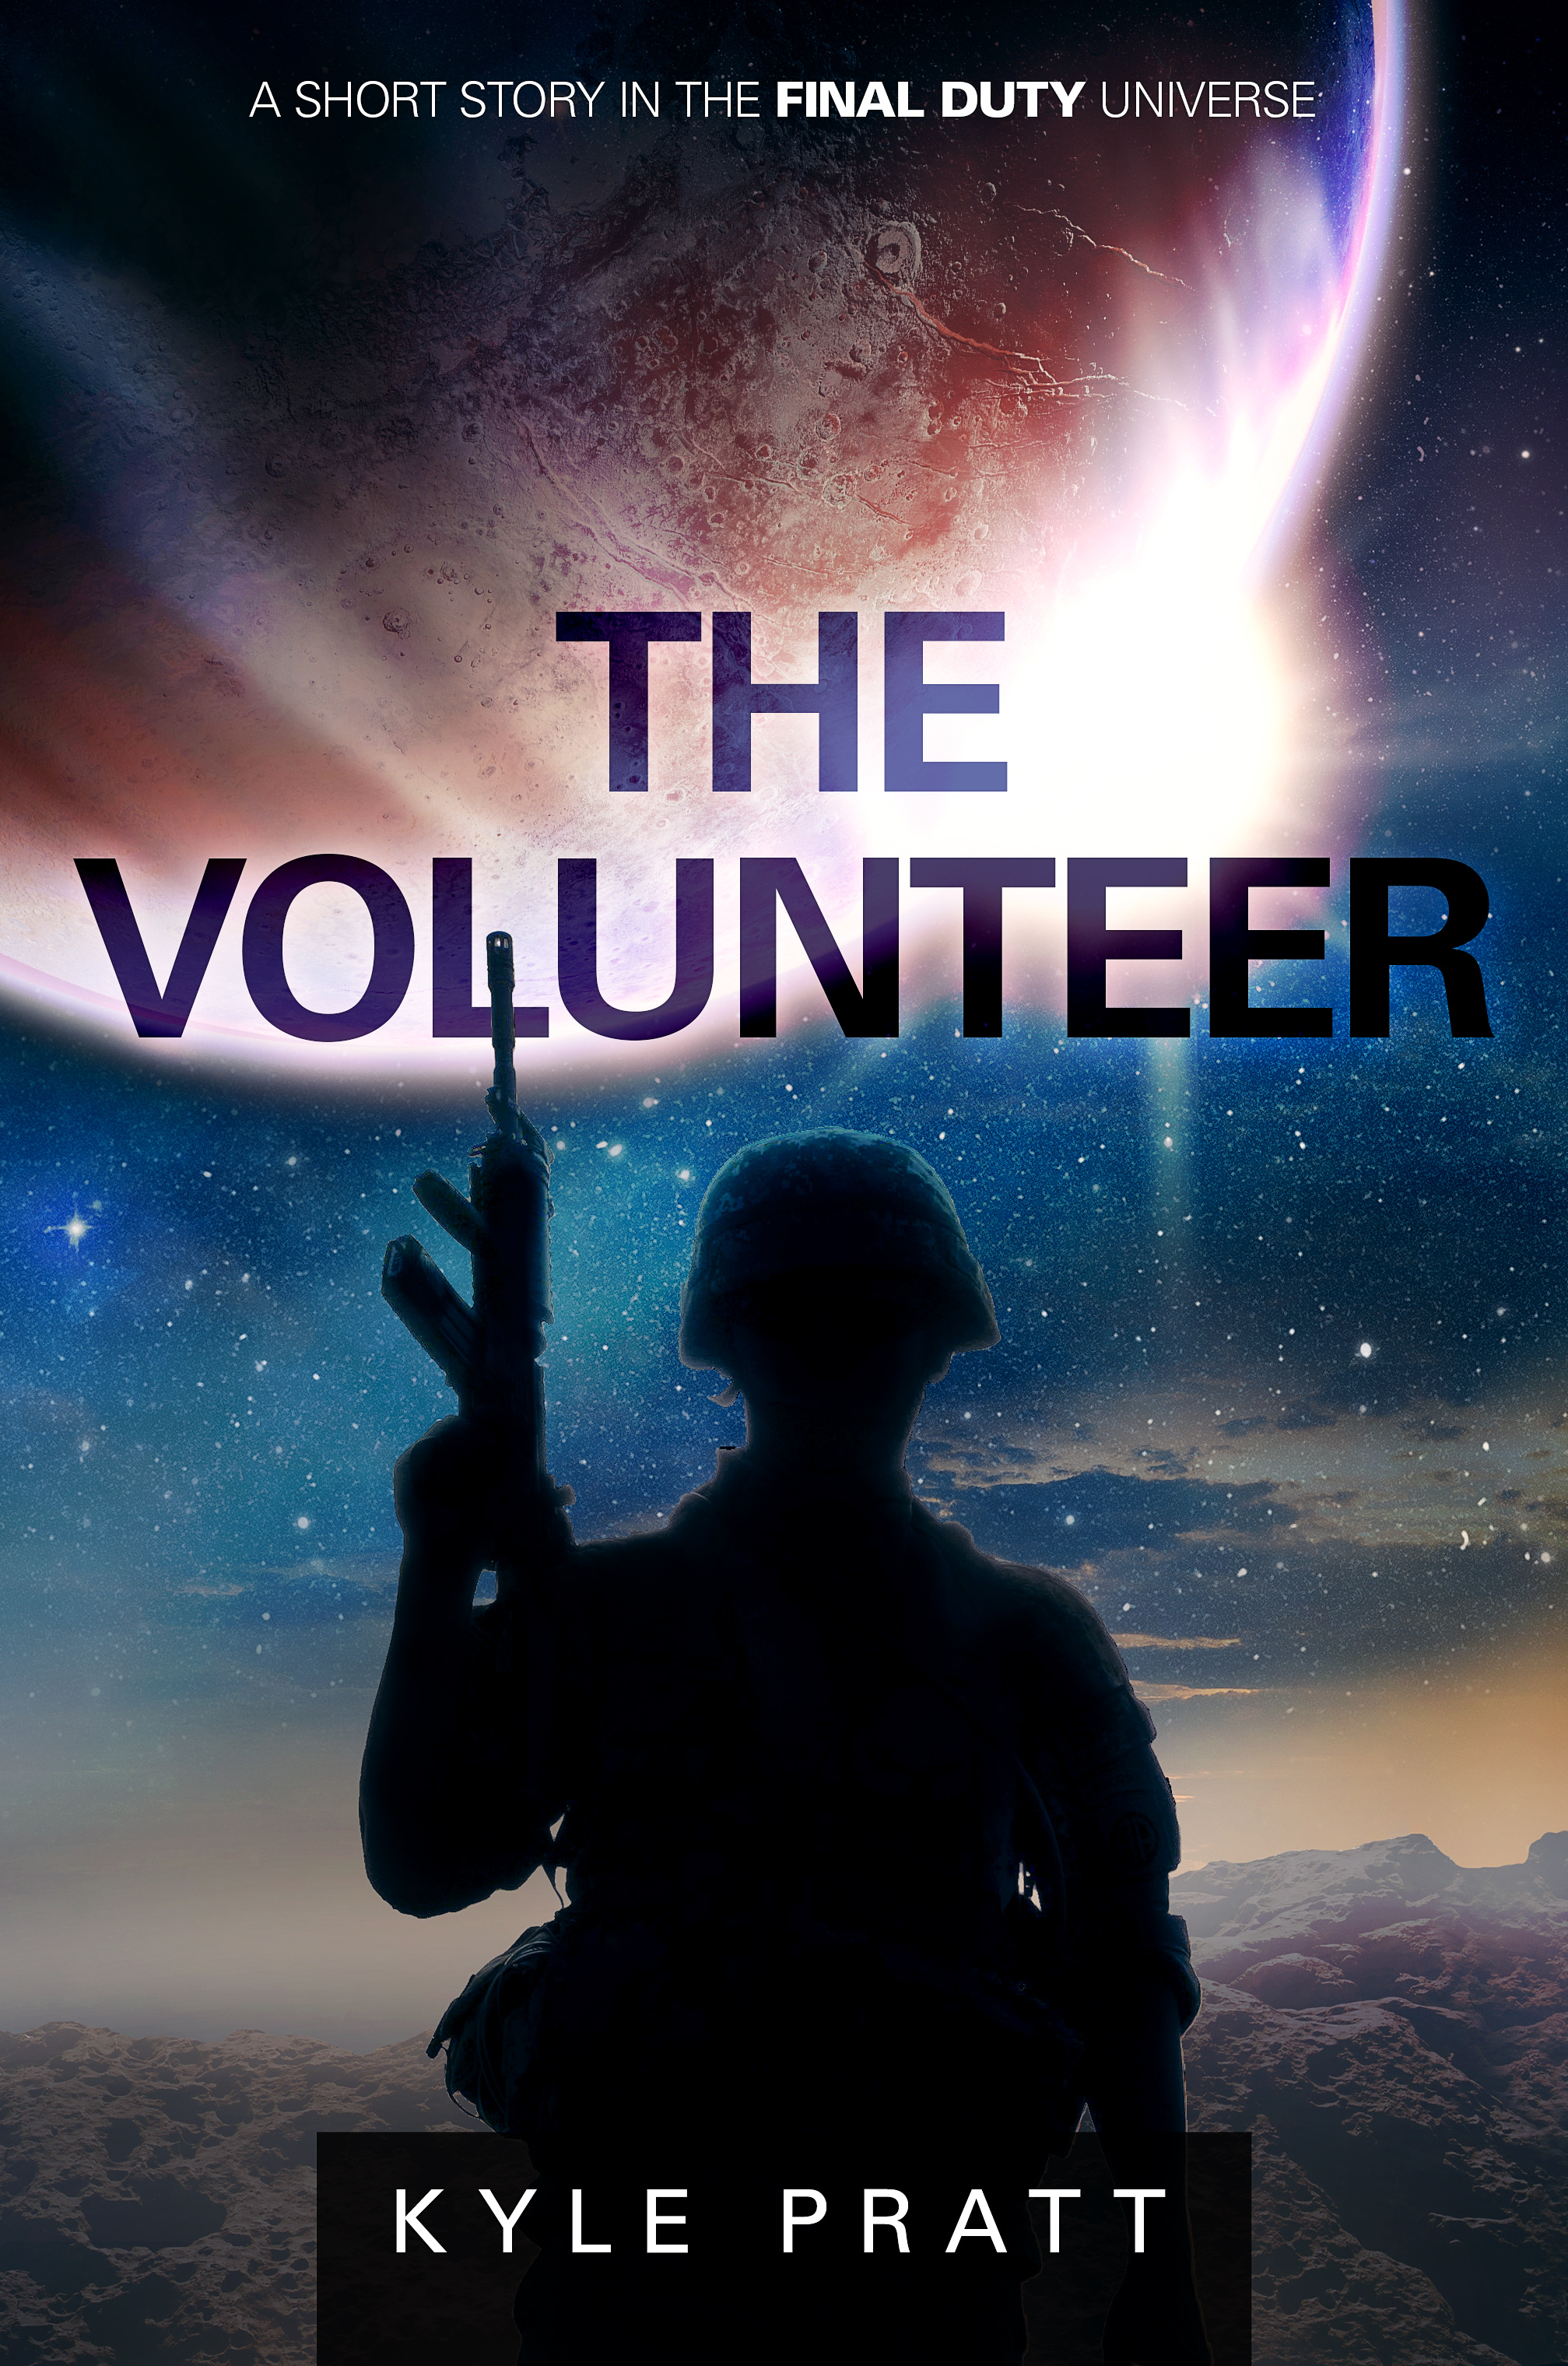 The Volunteer   After the hex attack Earth, Garvin Blake wants to impress his girlfriend and be something of a hero and so agrees to be cloned.  The Volunteer , my fourth story in the Final Duty universe, is a flash fiction piece of about 1,000-words.  The Volunteer  and  Infinite Darkness  are two stories that originate from a common idea. However,  Infinite Darkness  takes a sad, but hopeful turn while The Volunteer heads in a darker direction.  Because The Volunteer is flash fiction, I don't sell the story. It's only available to  newsletter subscribers .